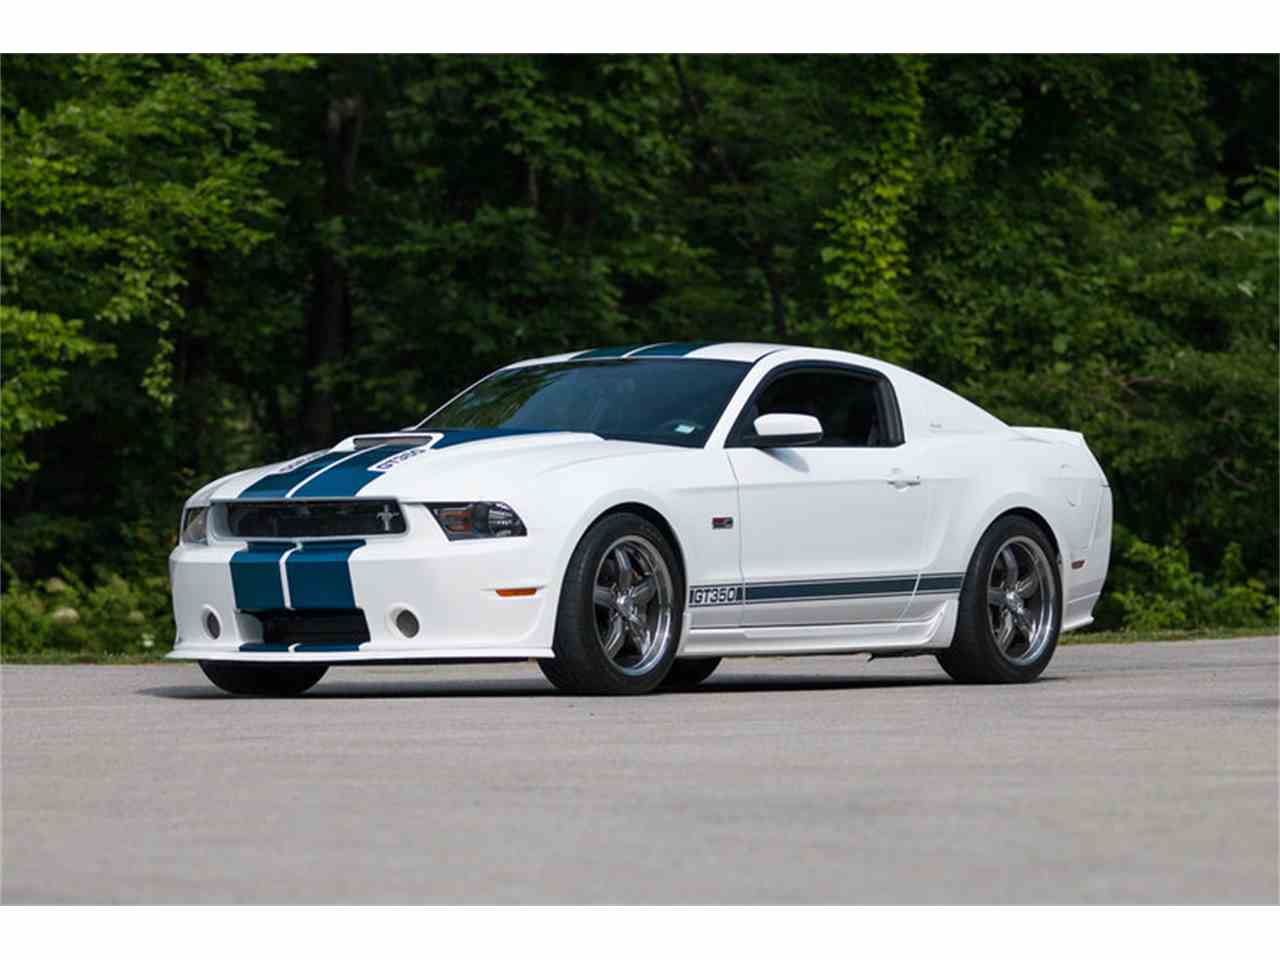 Large Picture of 2011 Mustang GT350 located in St. Charles Missouri - $89,995.00 - LCCC